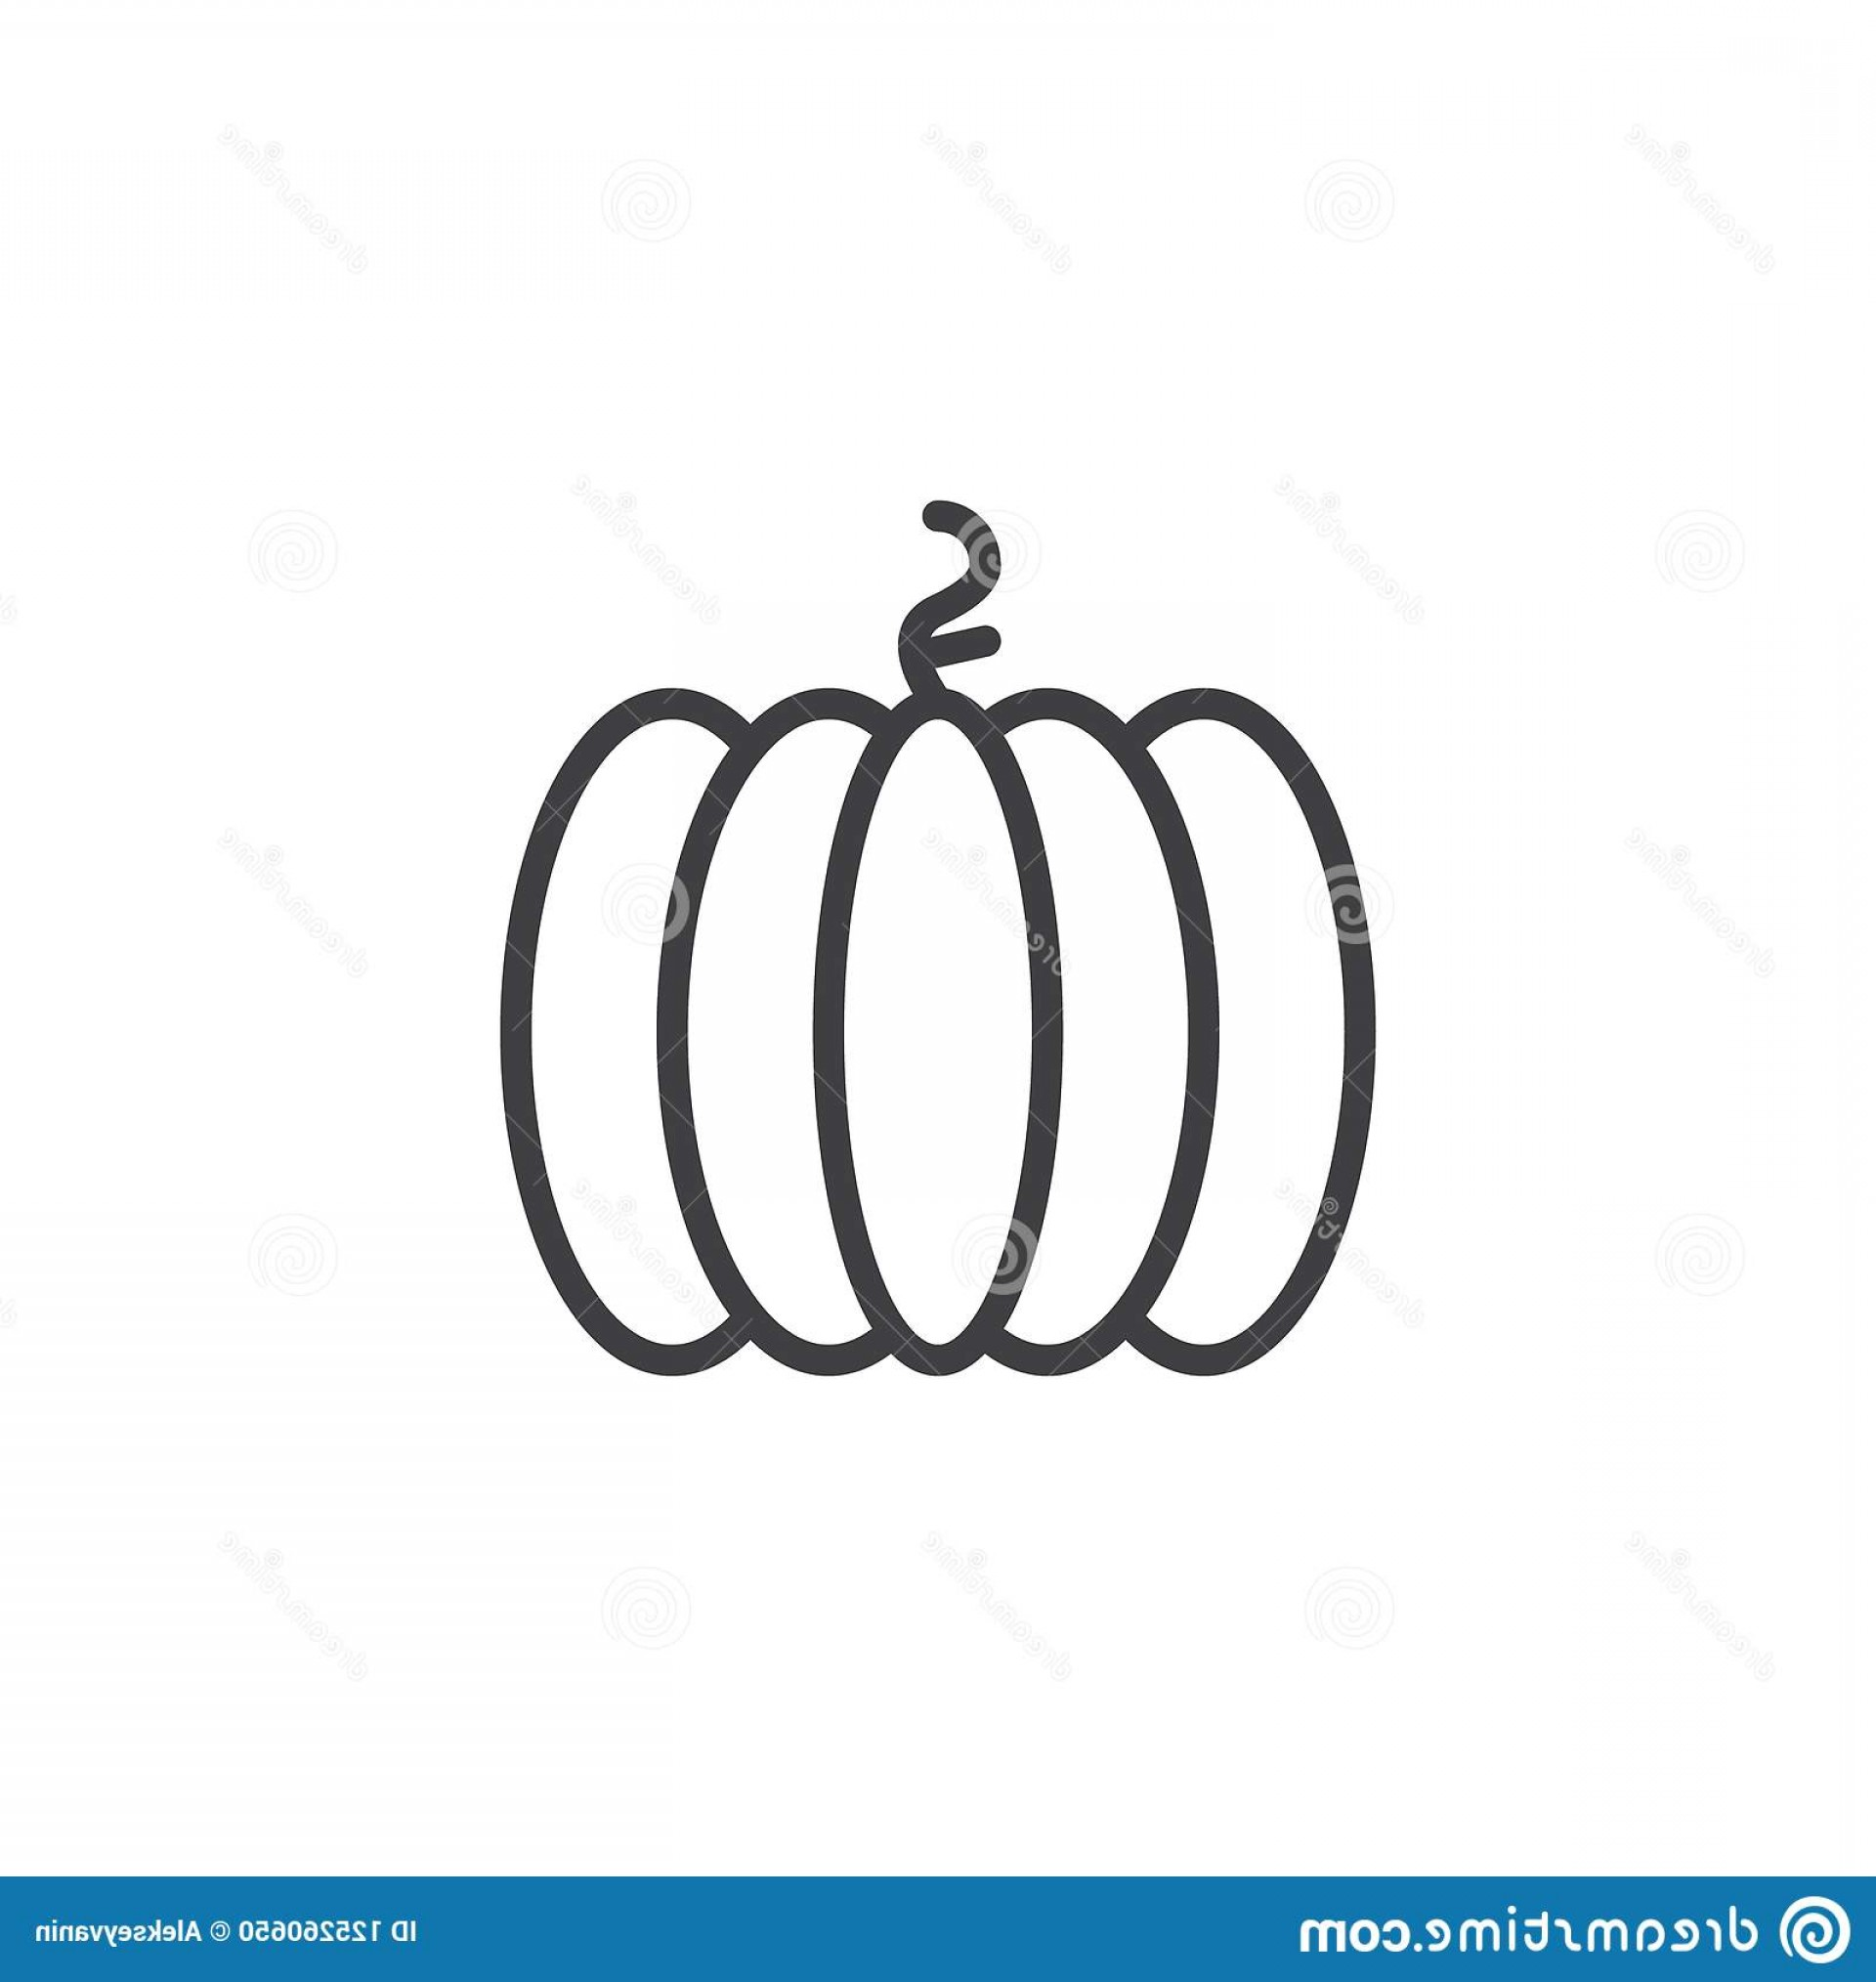 Pumpkin Outline Vector Art: Pumpkin Outline Icon Linear Style Sign Mobile Concept Web Design Vegetable Simple Line Vector Icon Halloween Symbol Logo Image